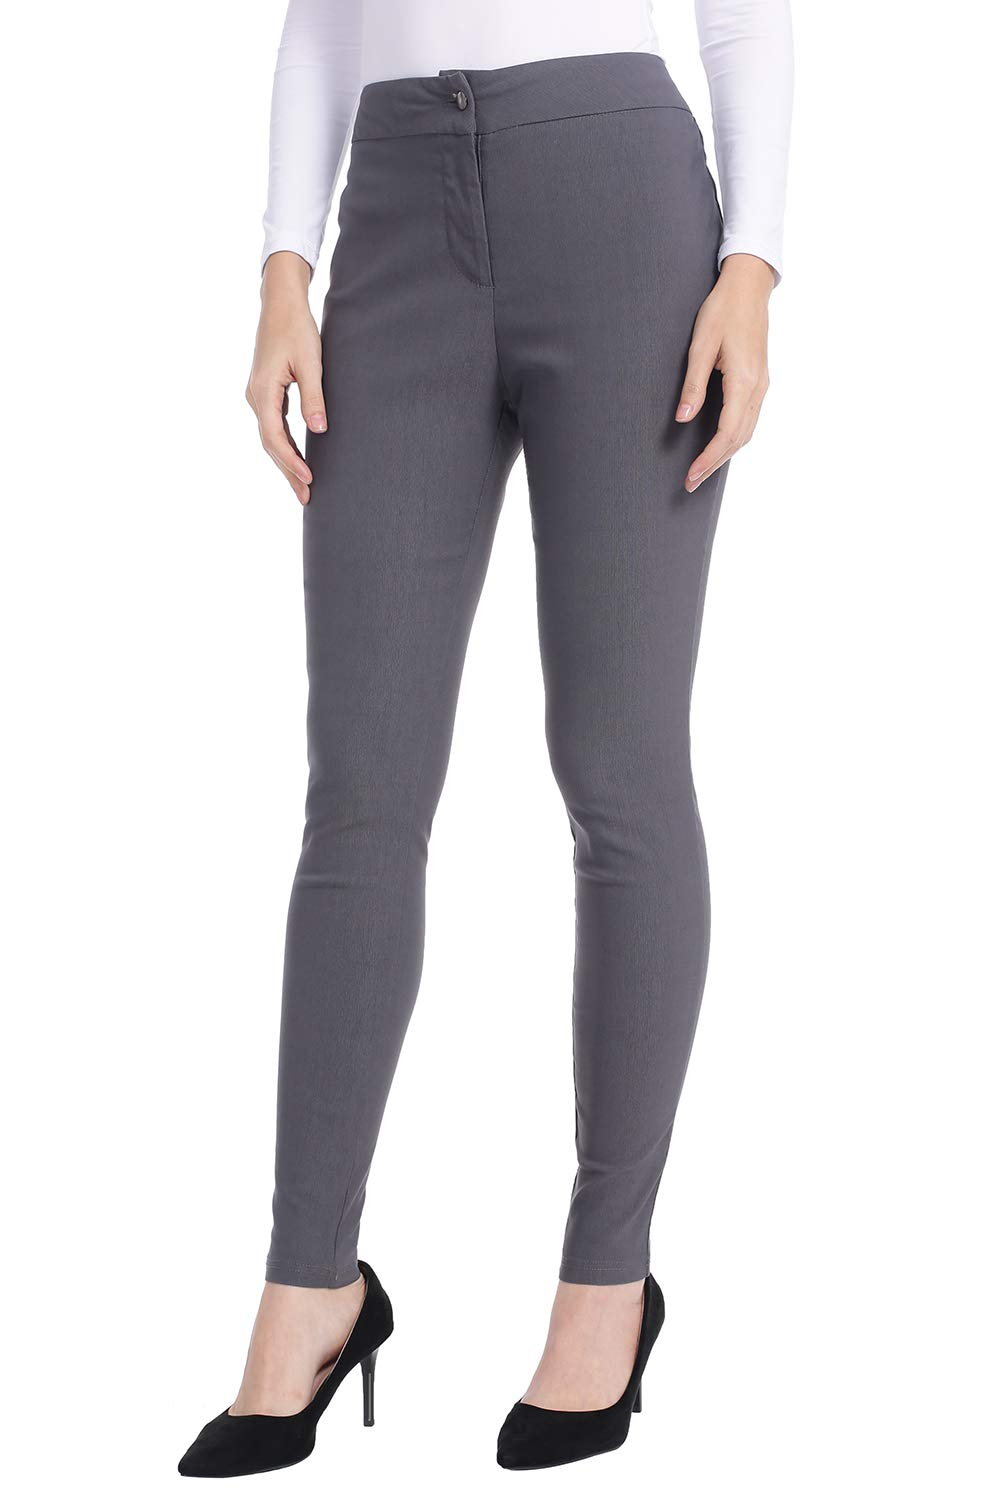 AUQCO Dress Pants for Women Business Casual Slim Fit Skinny Trousers Dark Grey by AUQCO